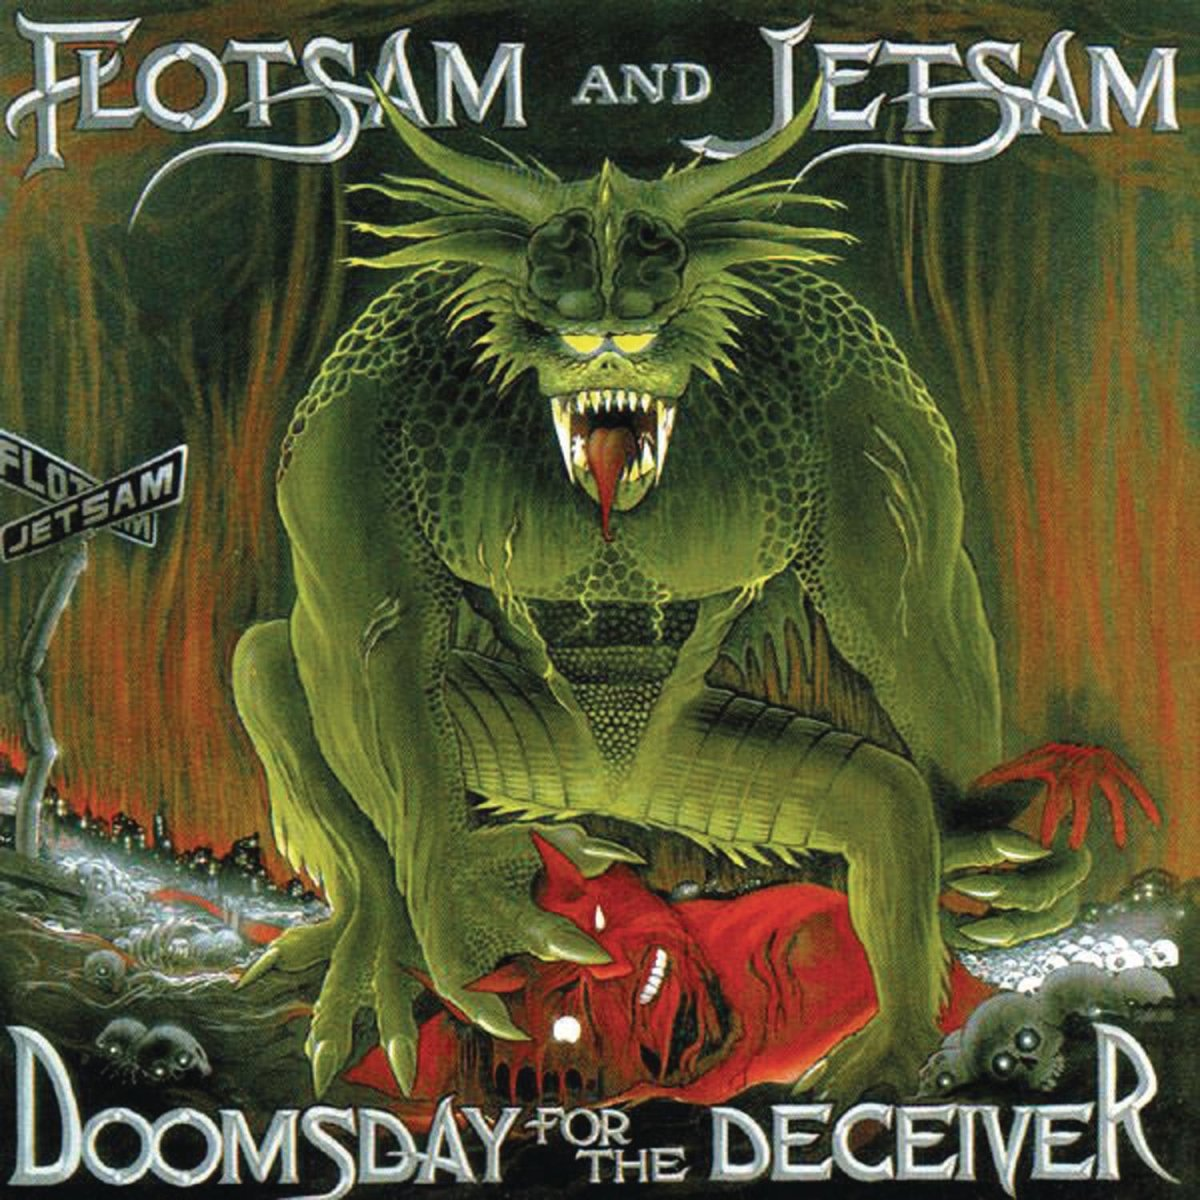 review-of-the-album-doomsday-for-the-deceiver-by-flotsam-and-jetsam